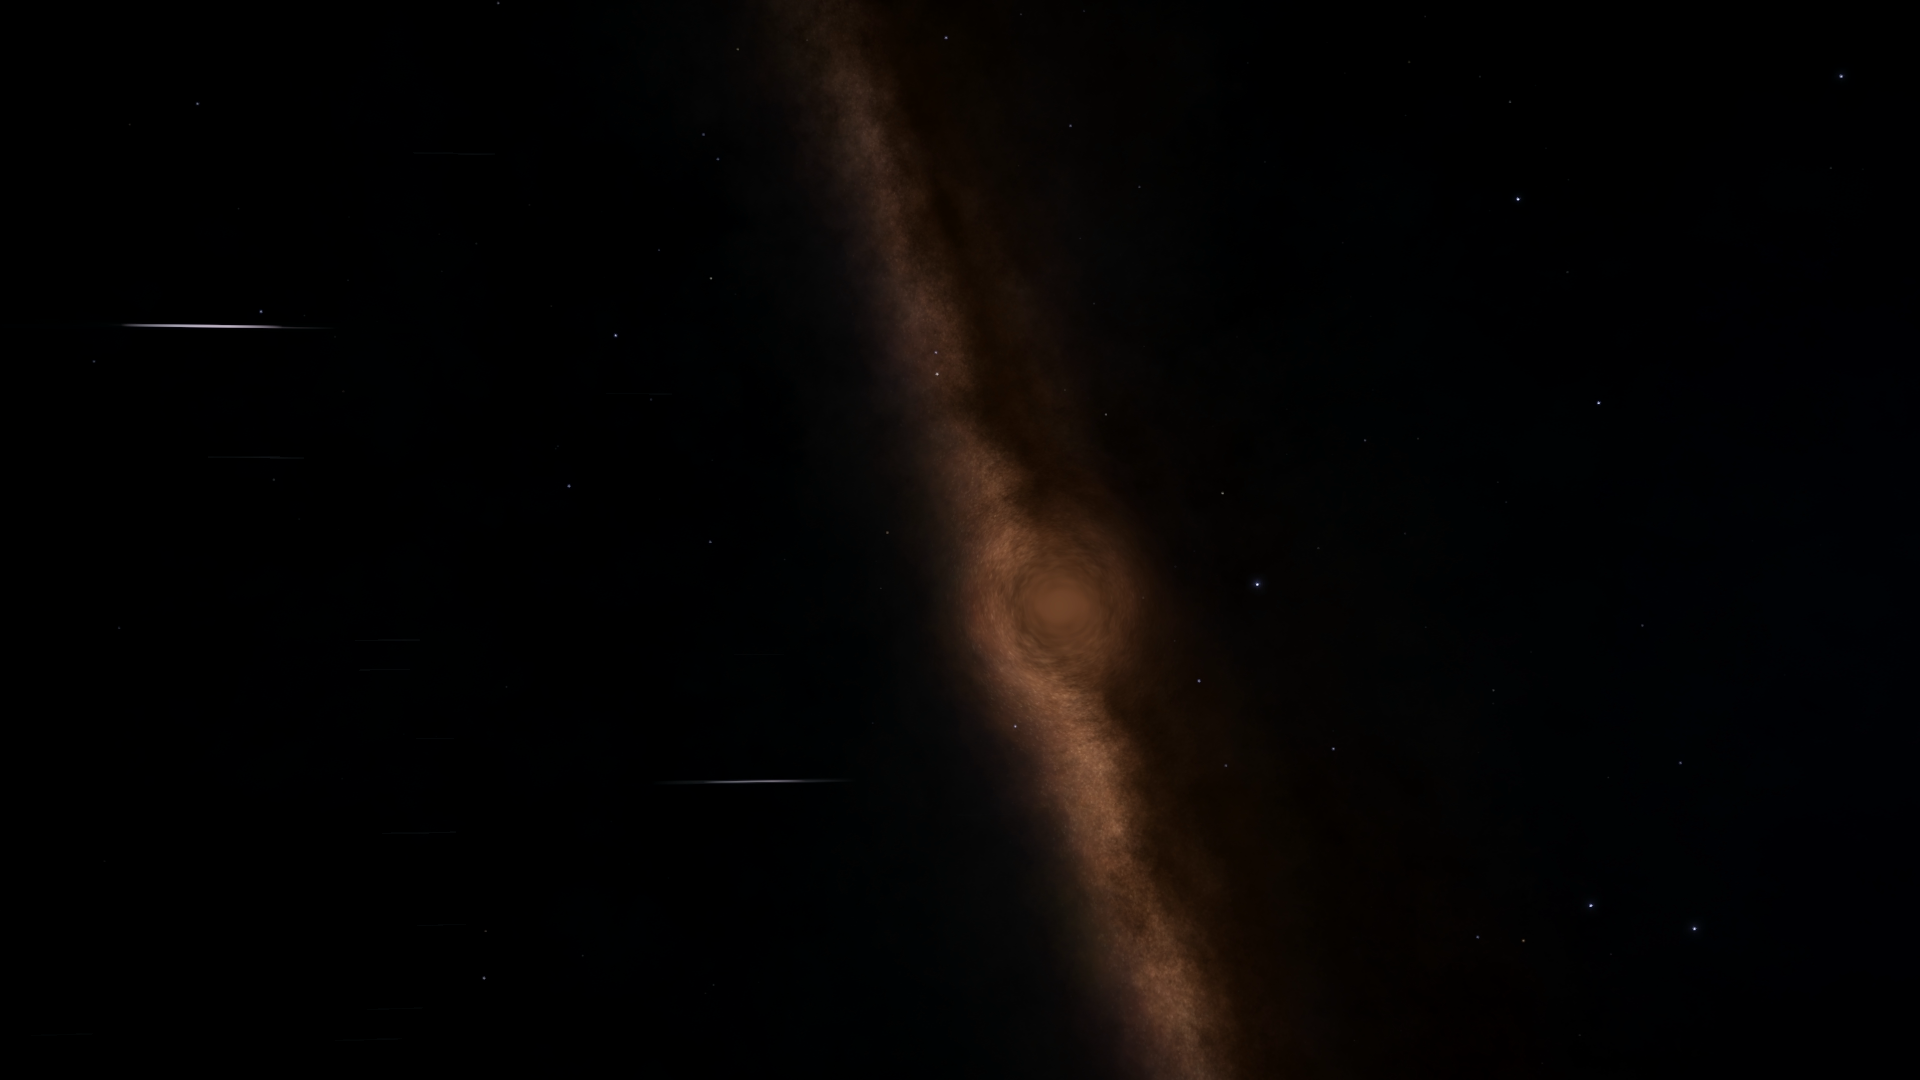 HD 167971 B - Black Hole